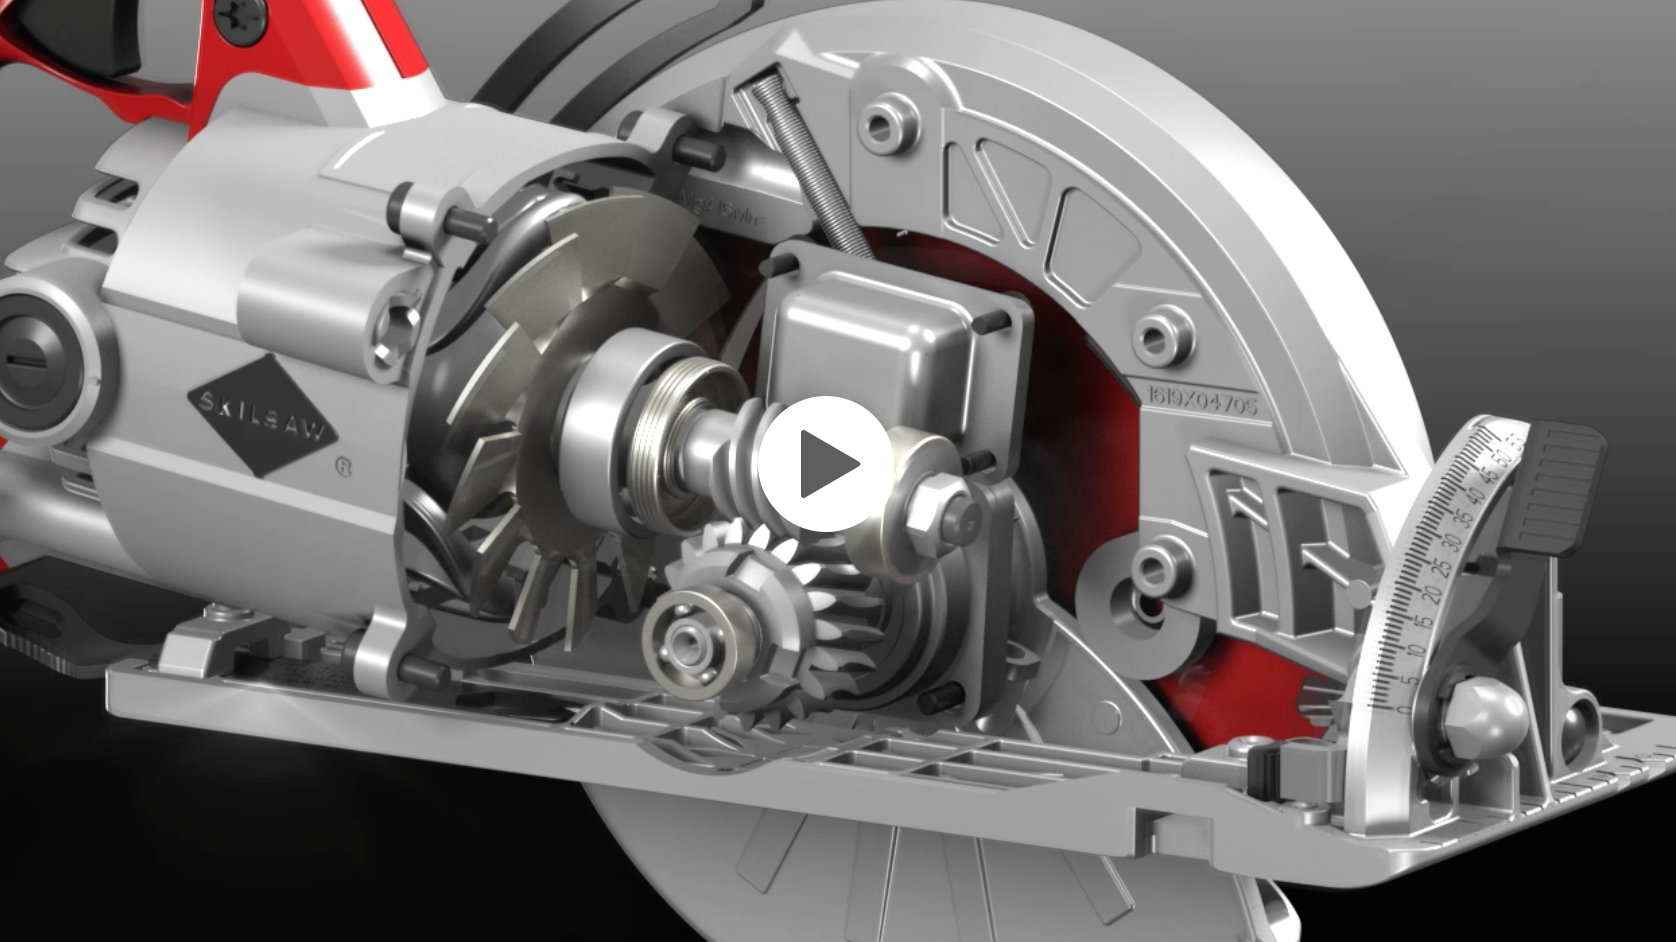 SKILSAW Worm Drive Table Saw Teaser